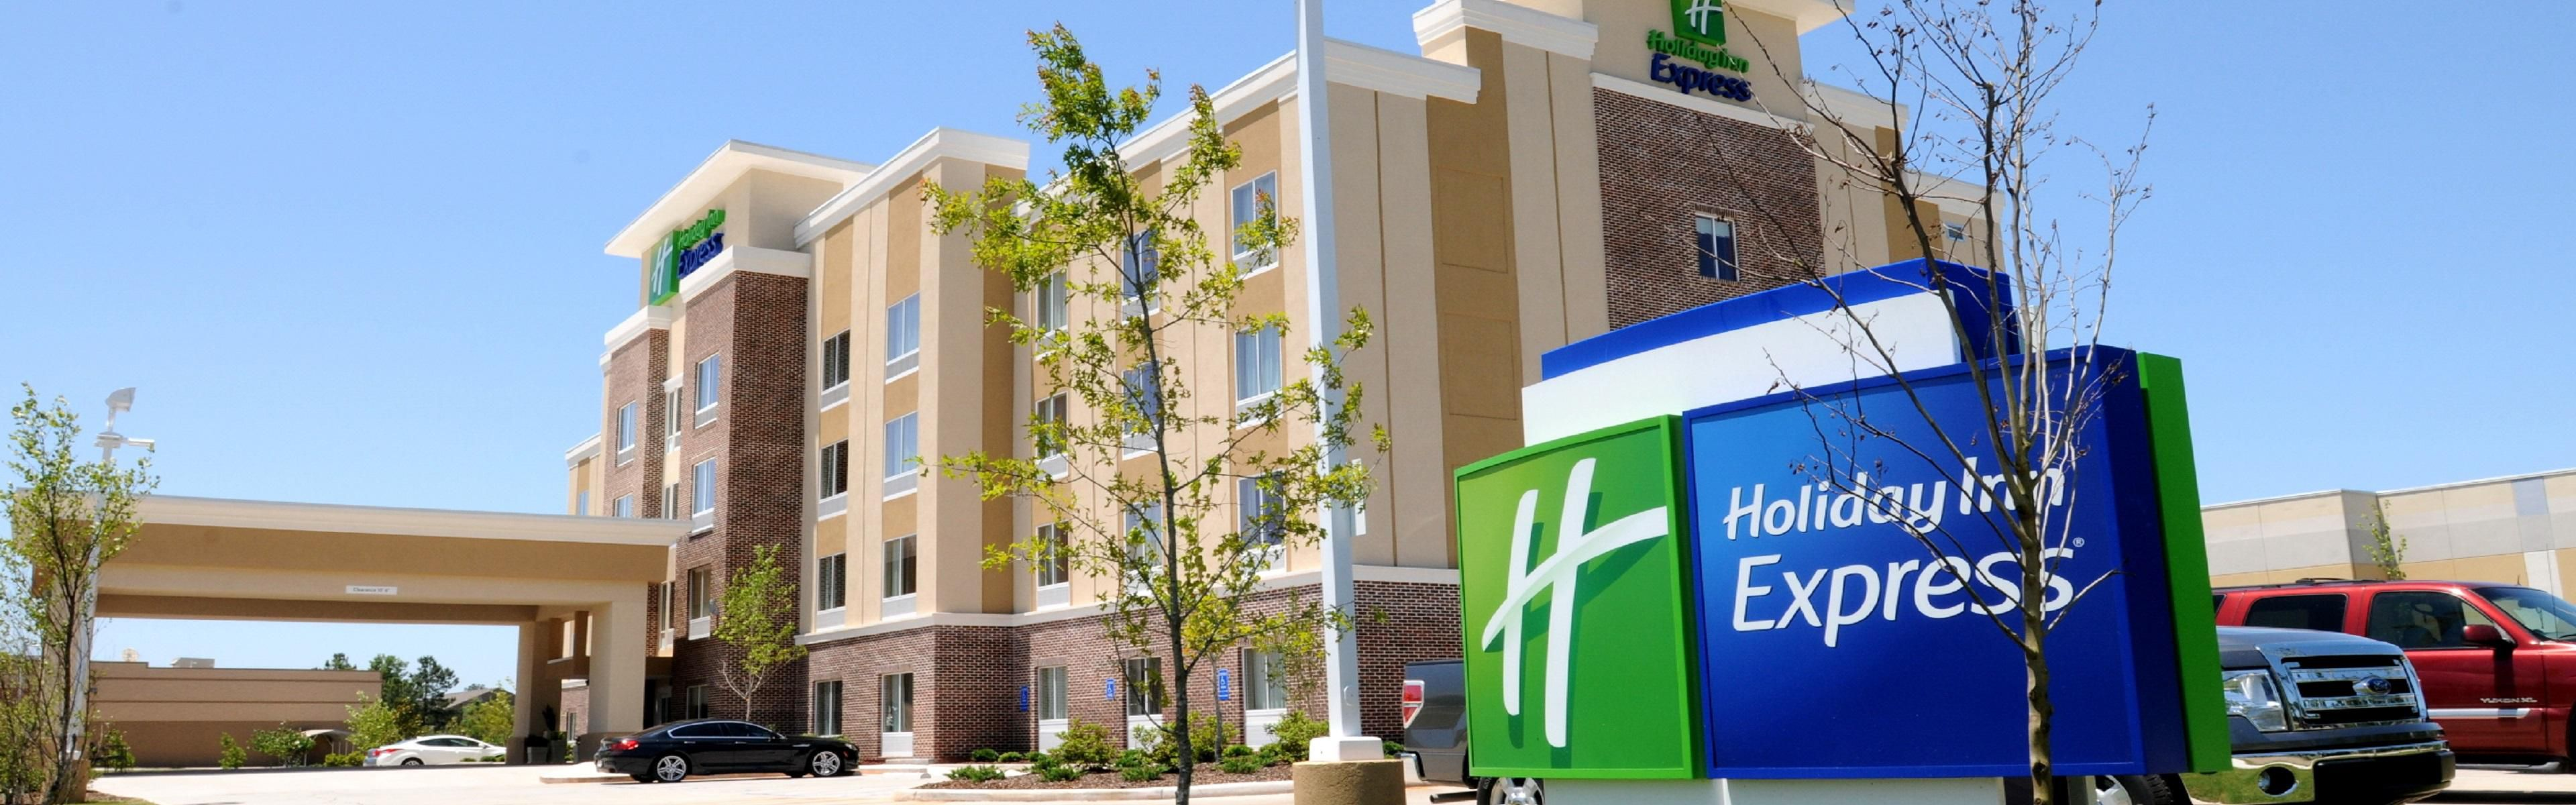 Holiday inn express covington madisonville covington for The covington